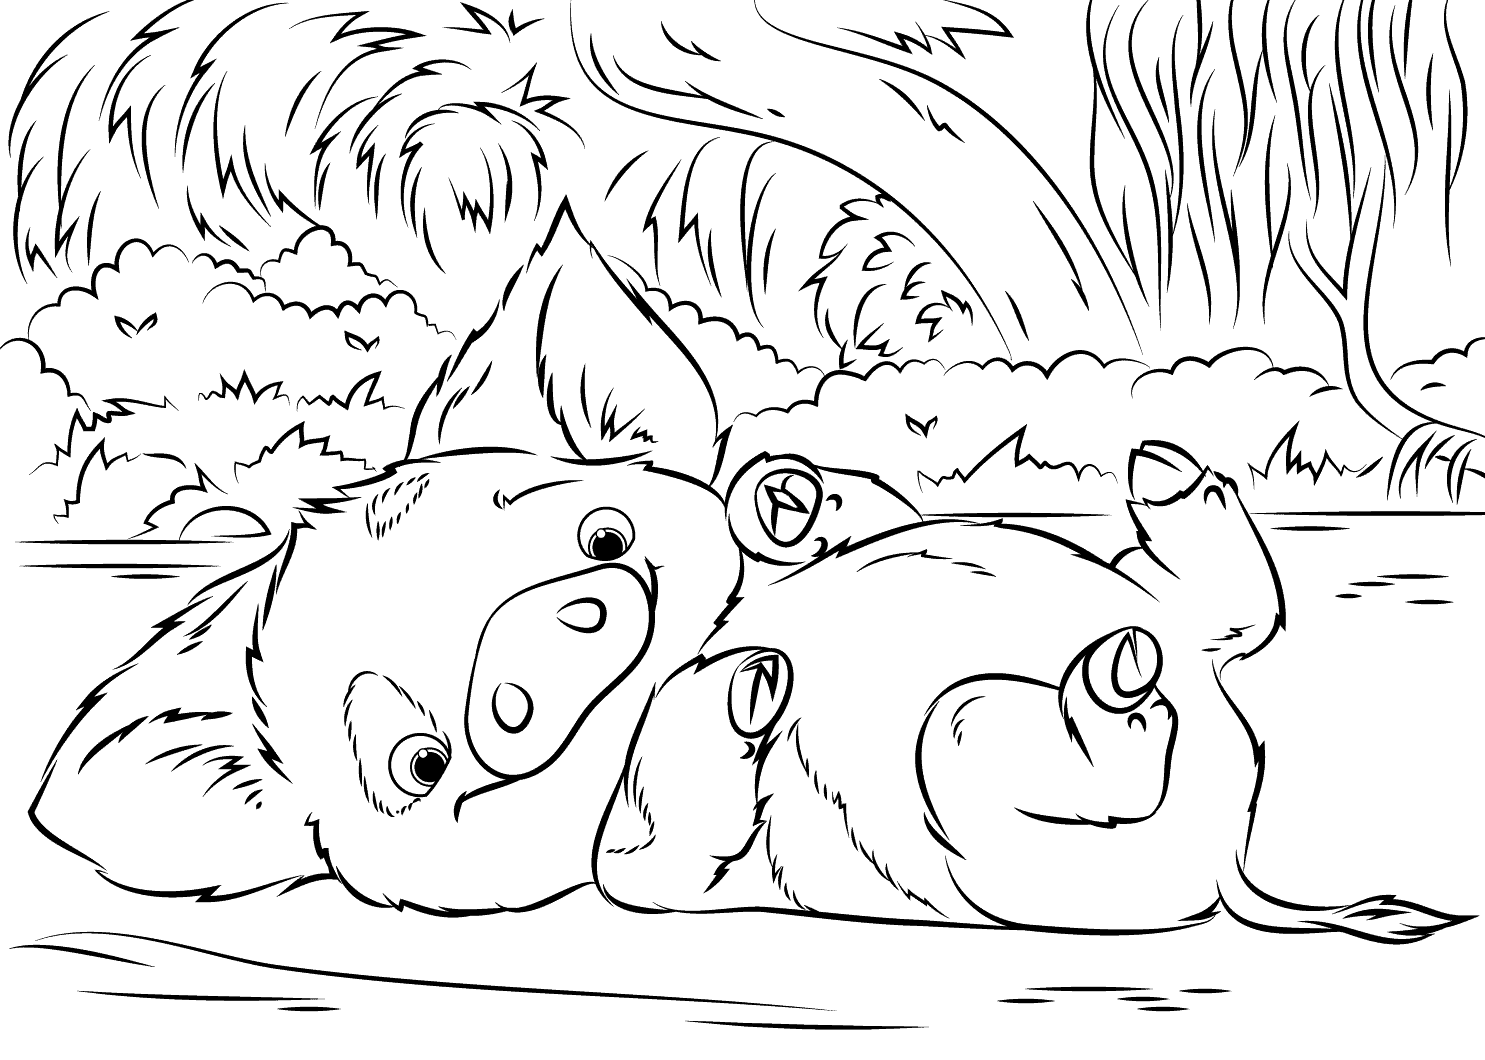 Disney Coloring Pages Best Coloring Pages For Kids Vaiana Ausmalbilder Ausmalbilder Ausmalbilder Disney